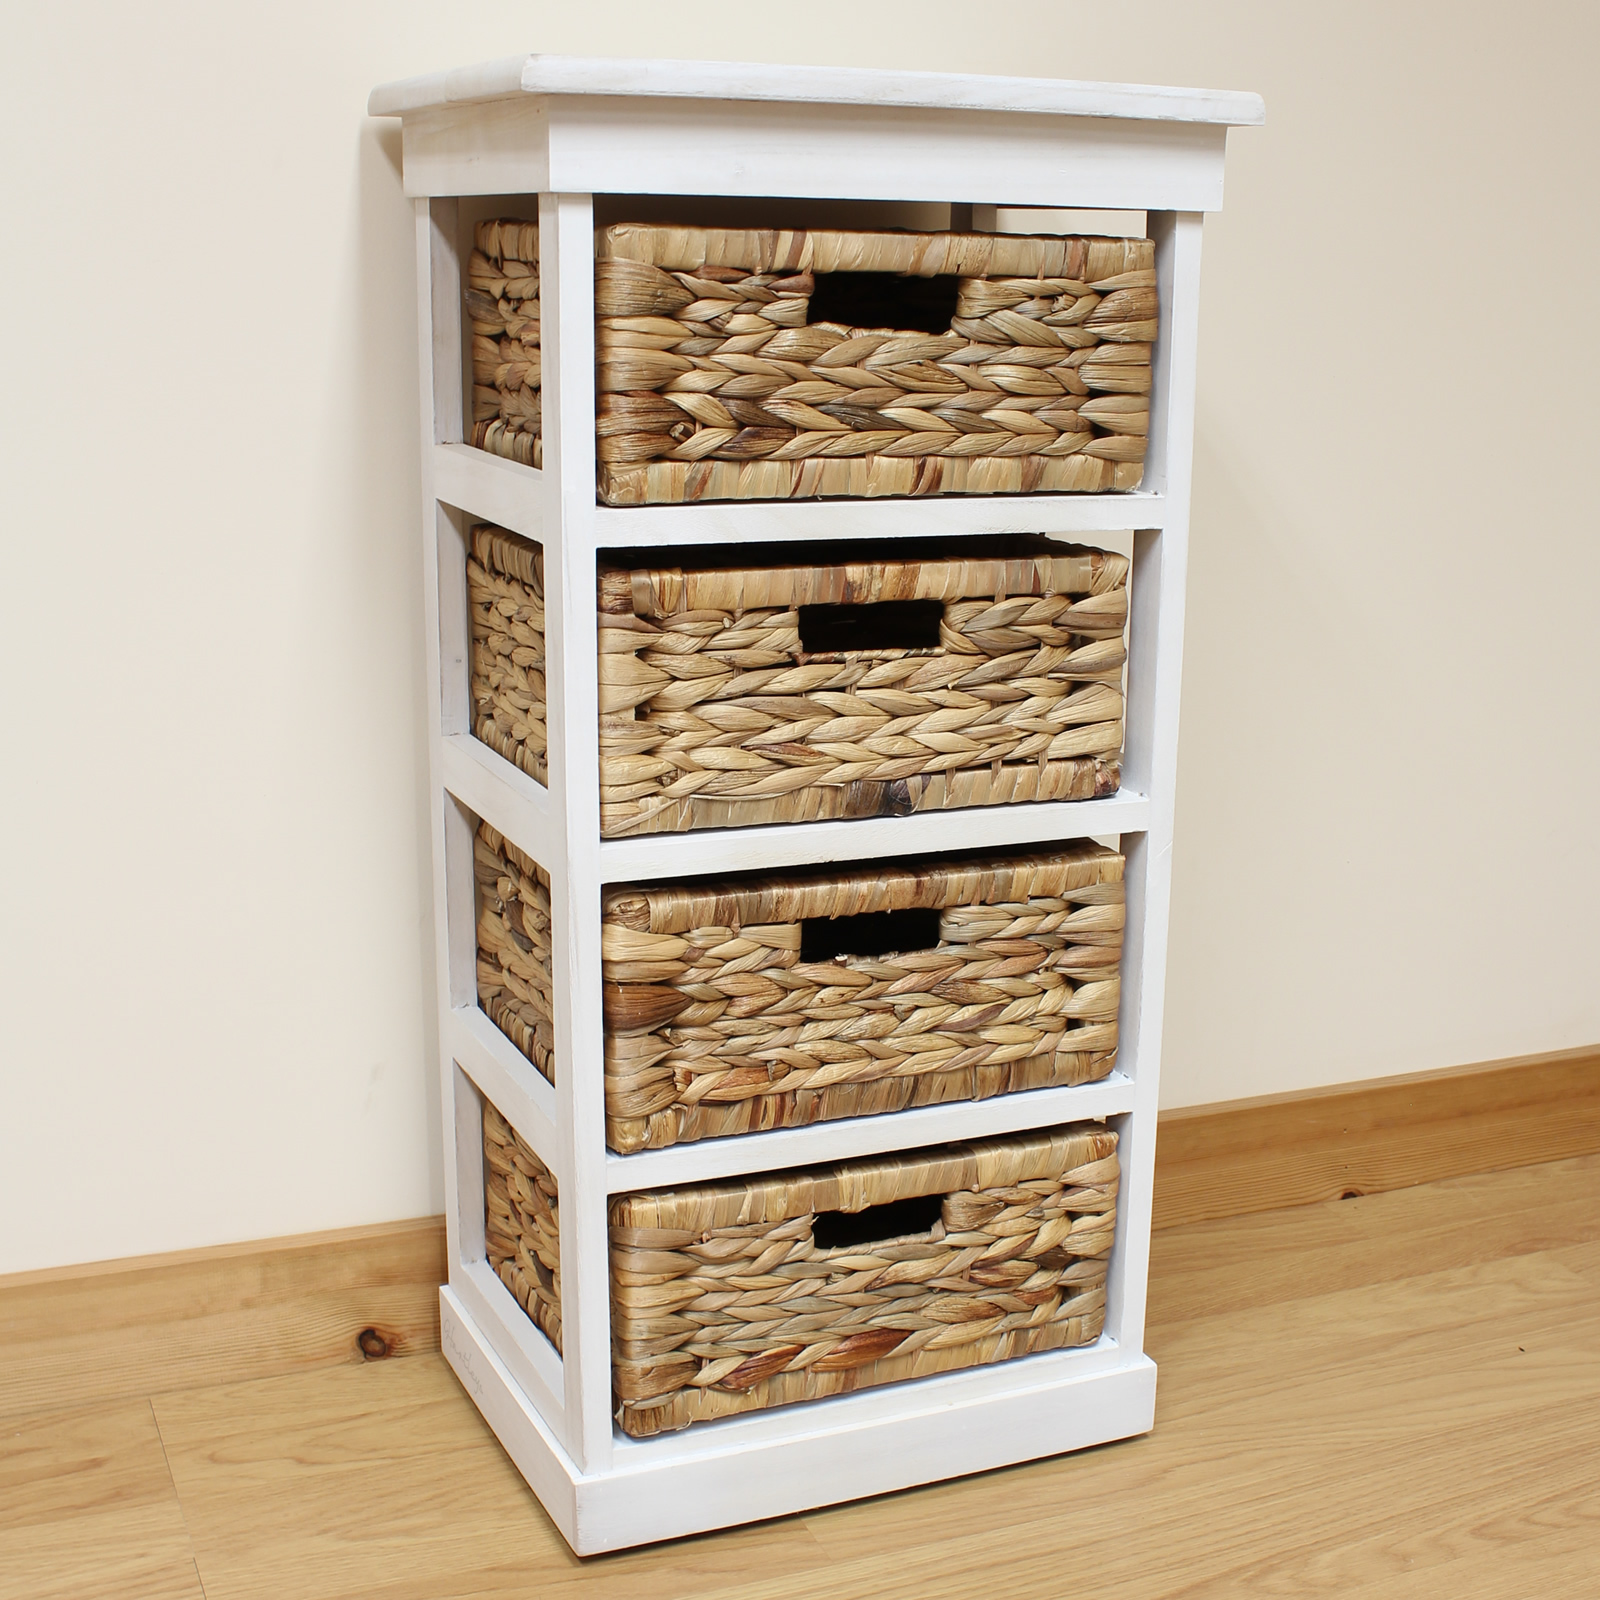 Hartleys Large White 4 Basket Chest Home Storage Unit Bathroom Wicker Drawers 5051990994379 Ebay